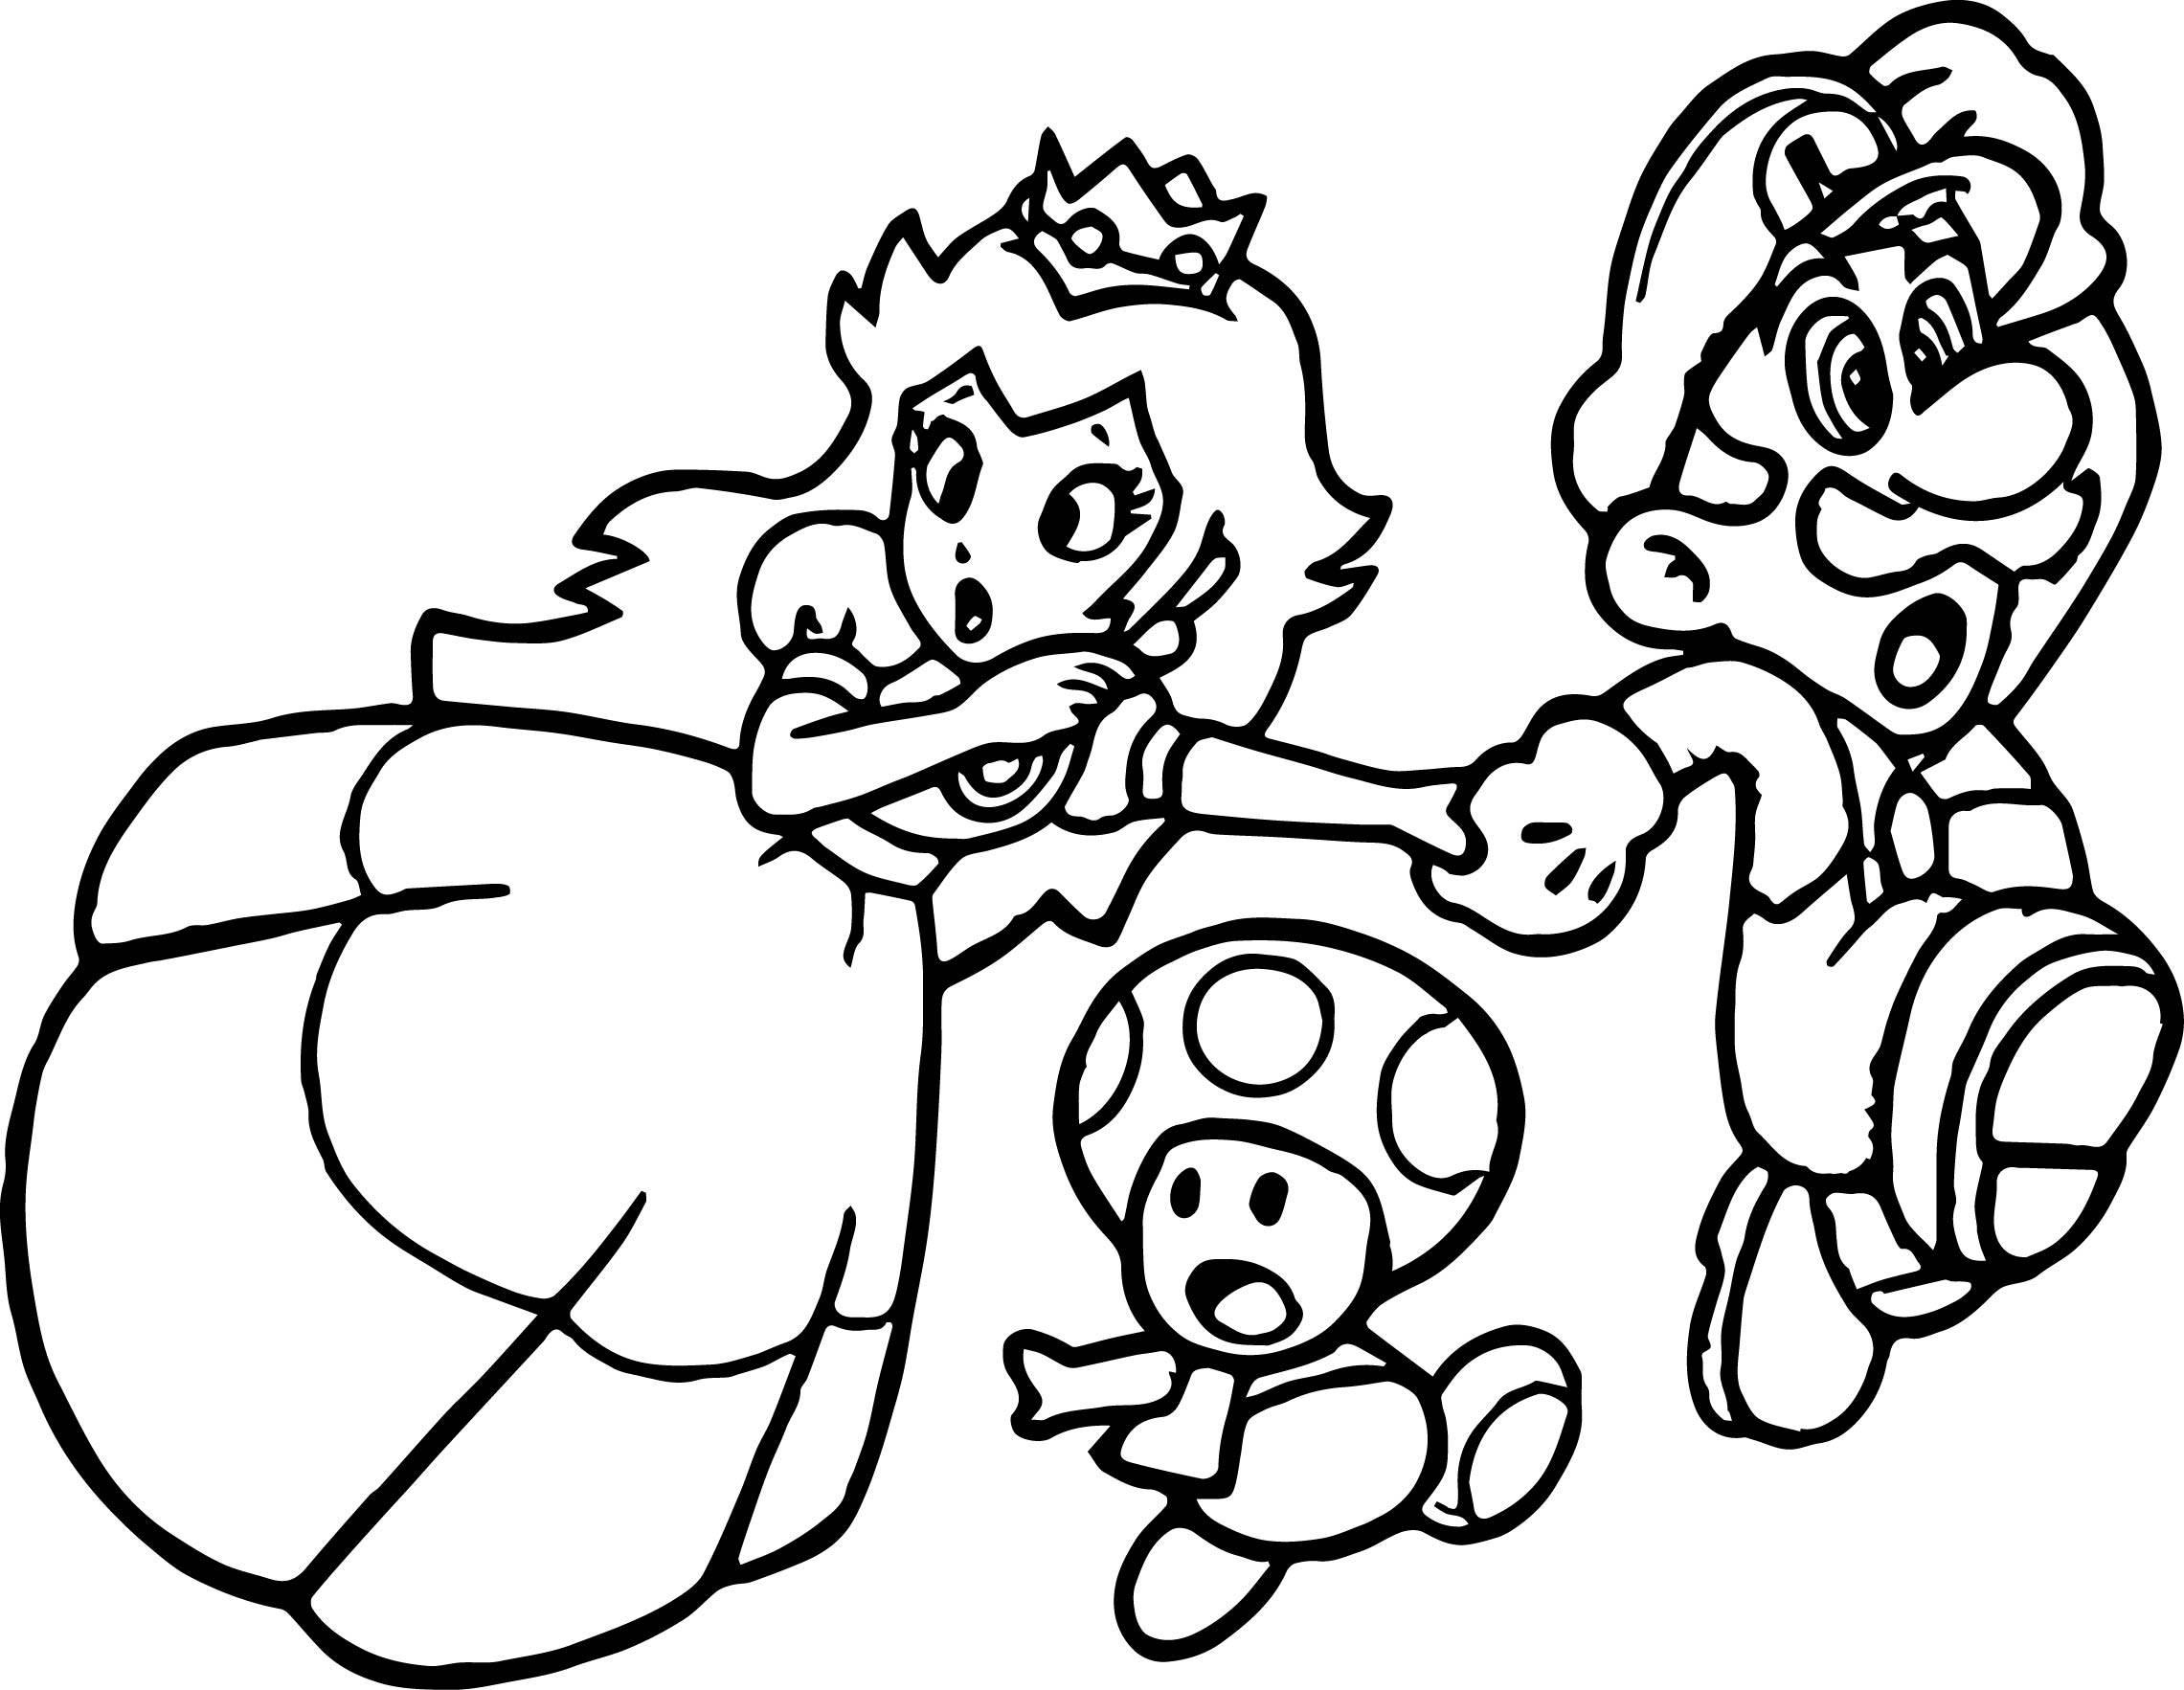 Super mario princess mushroom coloring page for Mario color page